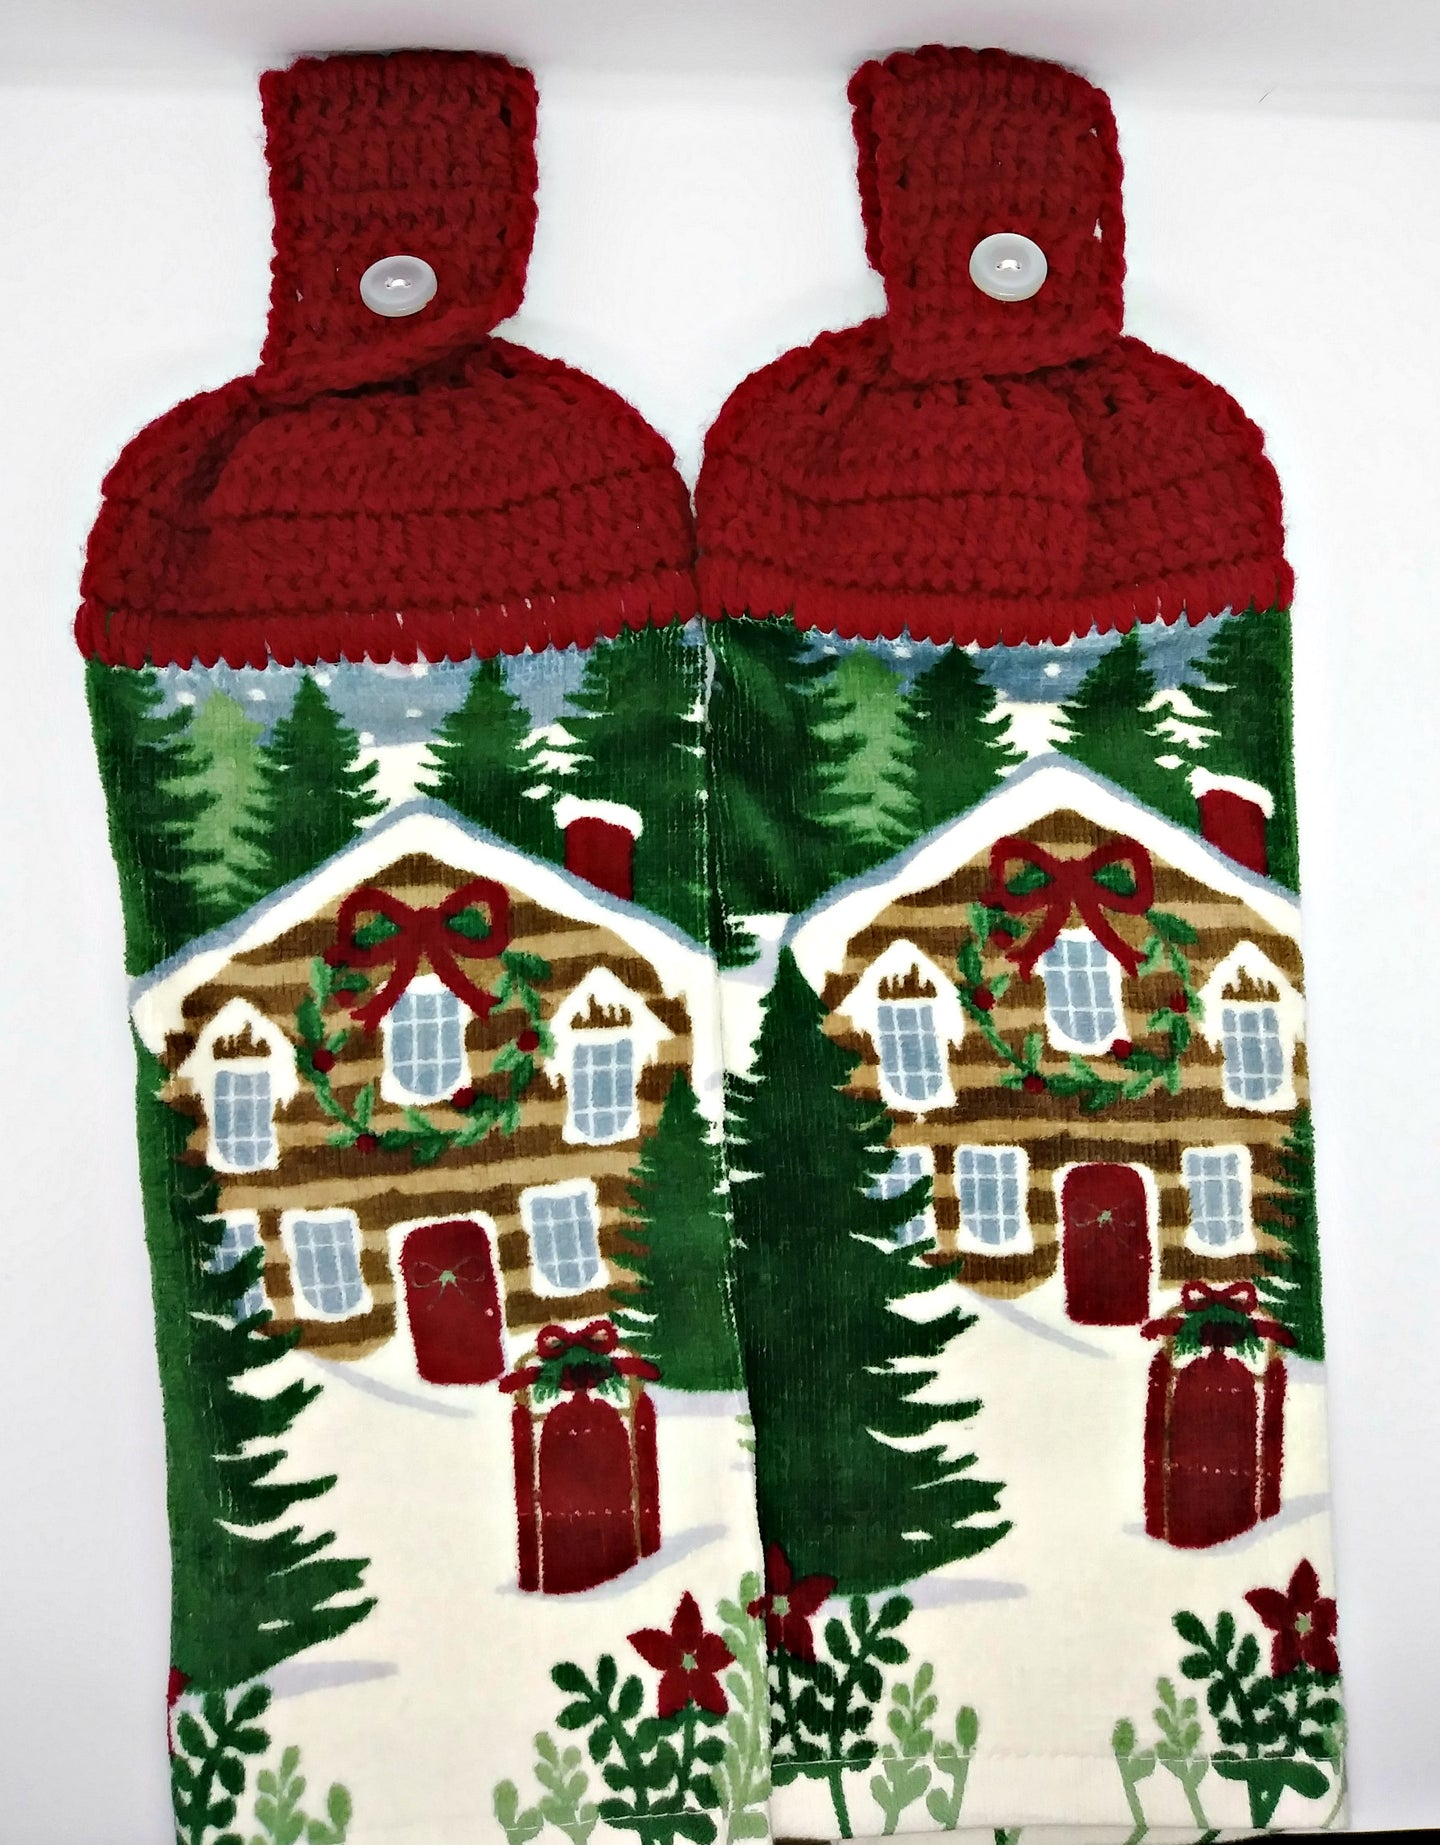 Cozy Christmas Cabin Hanging Kitchen Towel Set